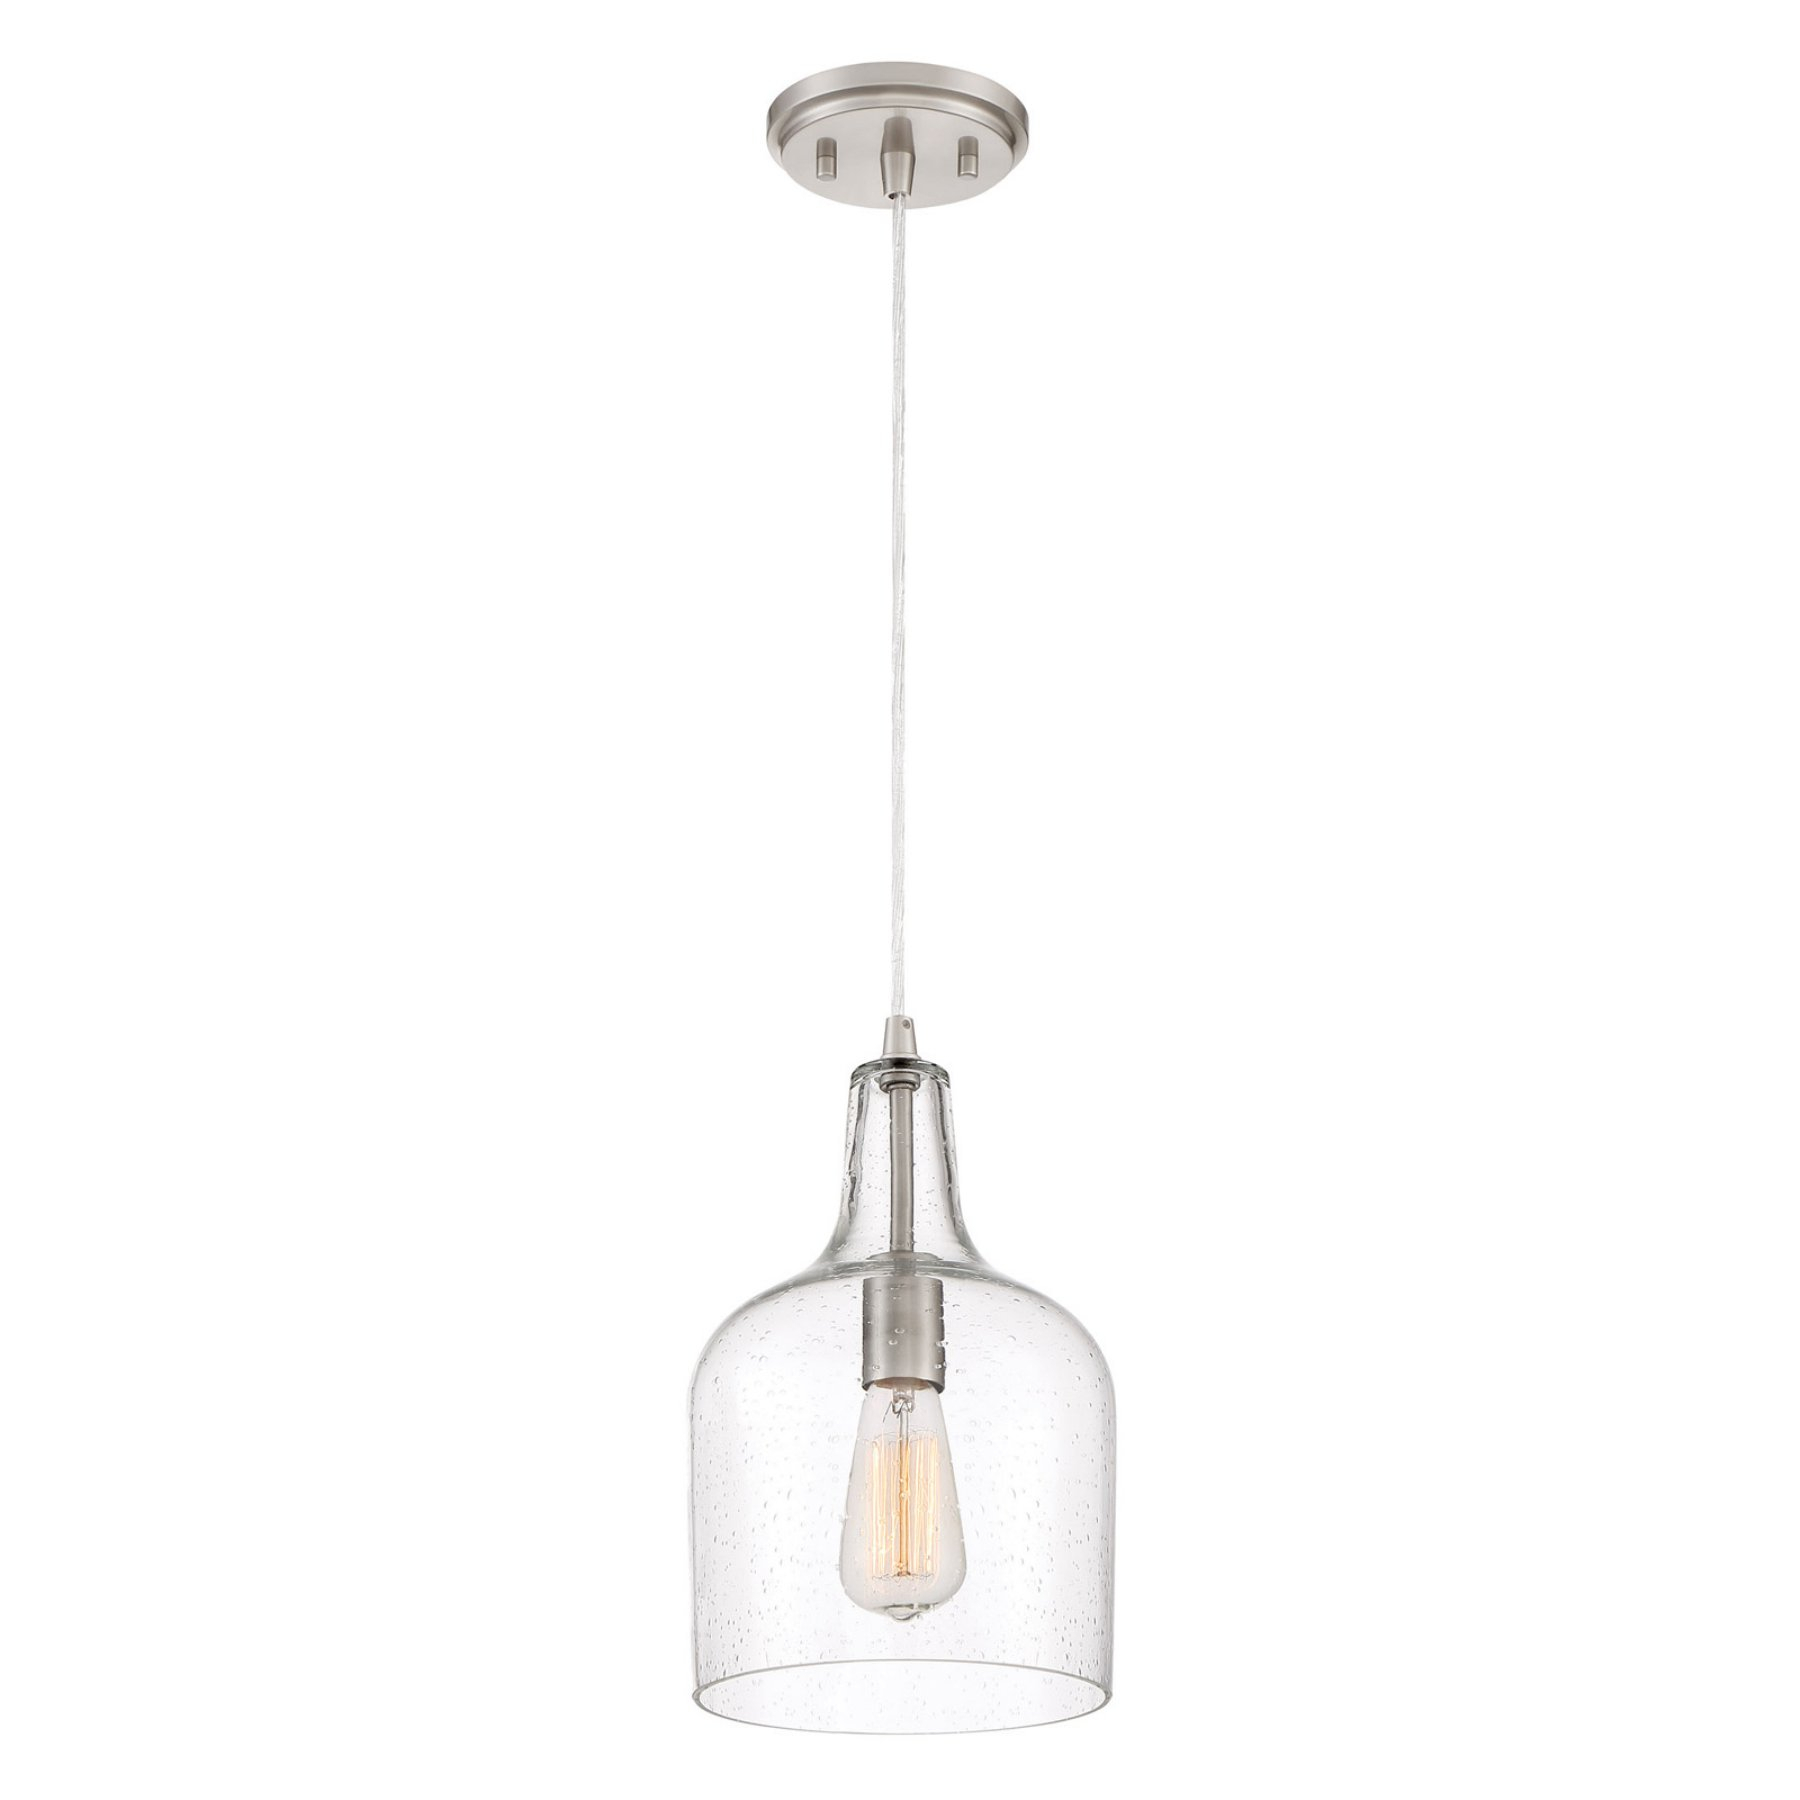 Quoizel Qpp3402Bn Mini Pendant Light | Products In 2019 intended for Clematite 1-Light Single Jar Pendants (Image 26 of 30)